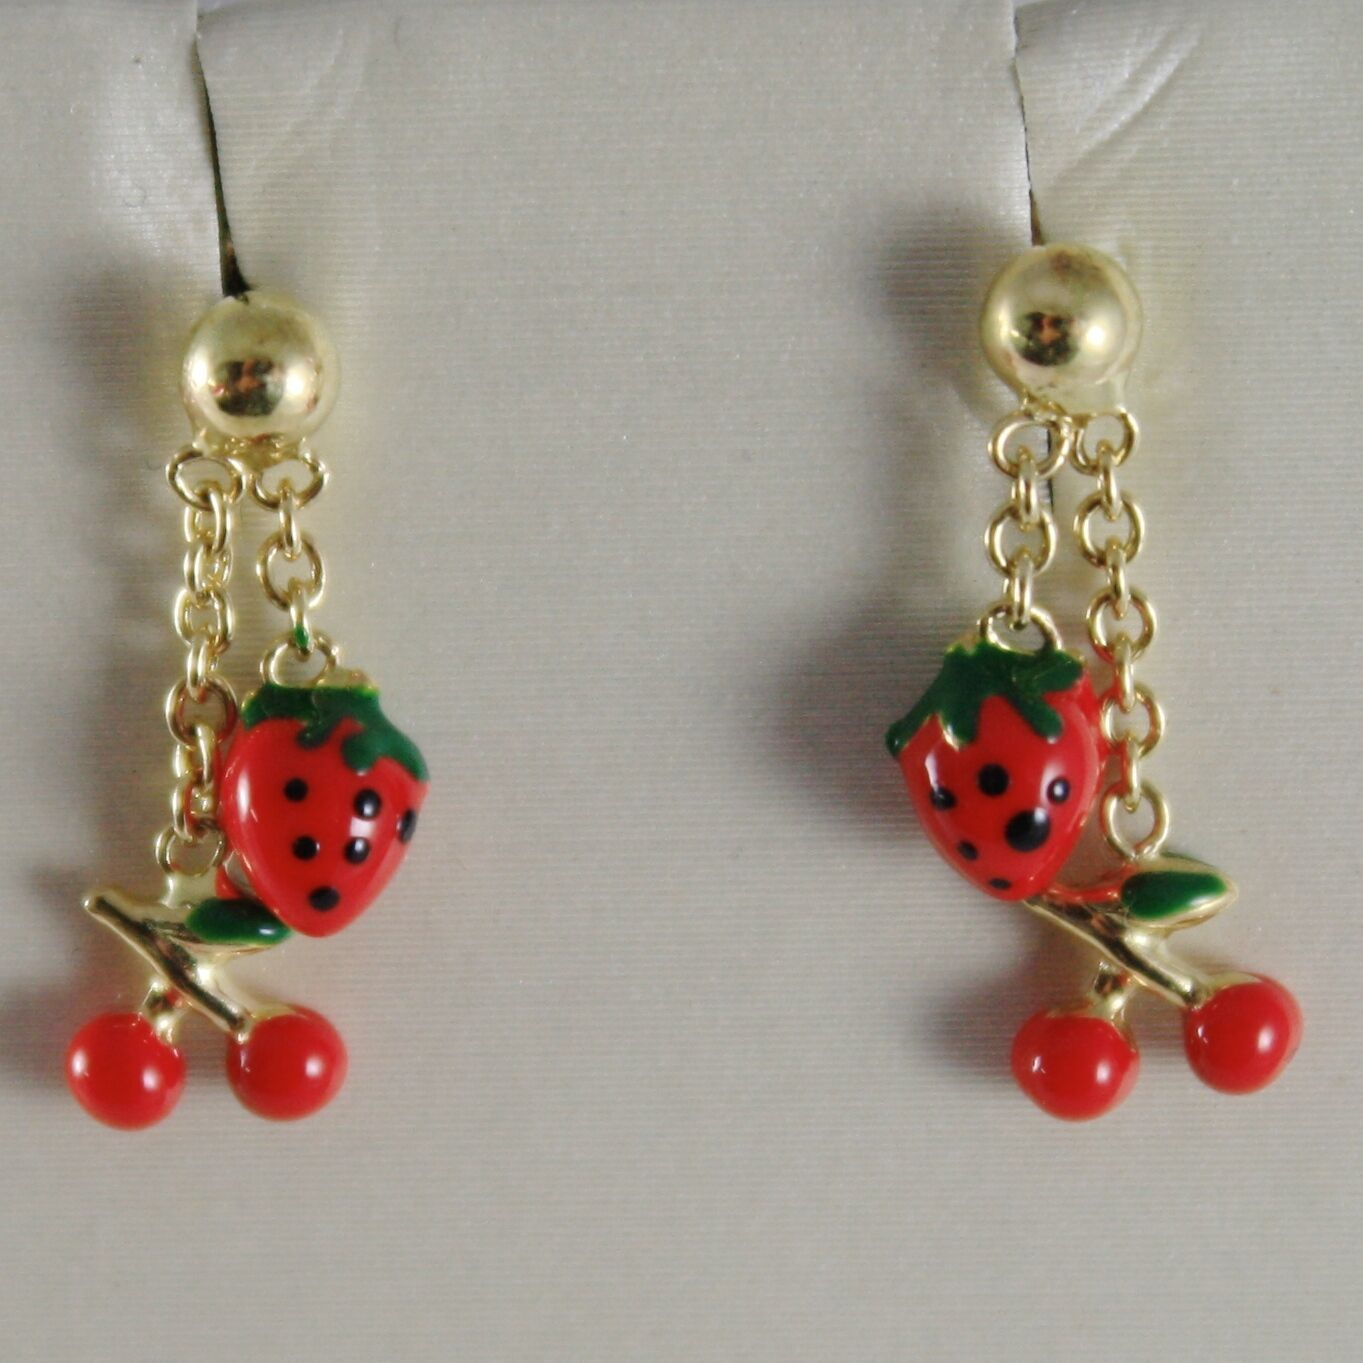 18K YELLOW GOLD PENDANT KIDS EARRINGS GLAZED CHERRY STRAWBERRY MADE IN ITALY